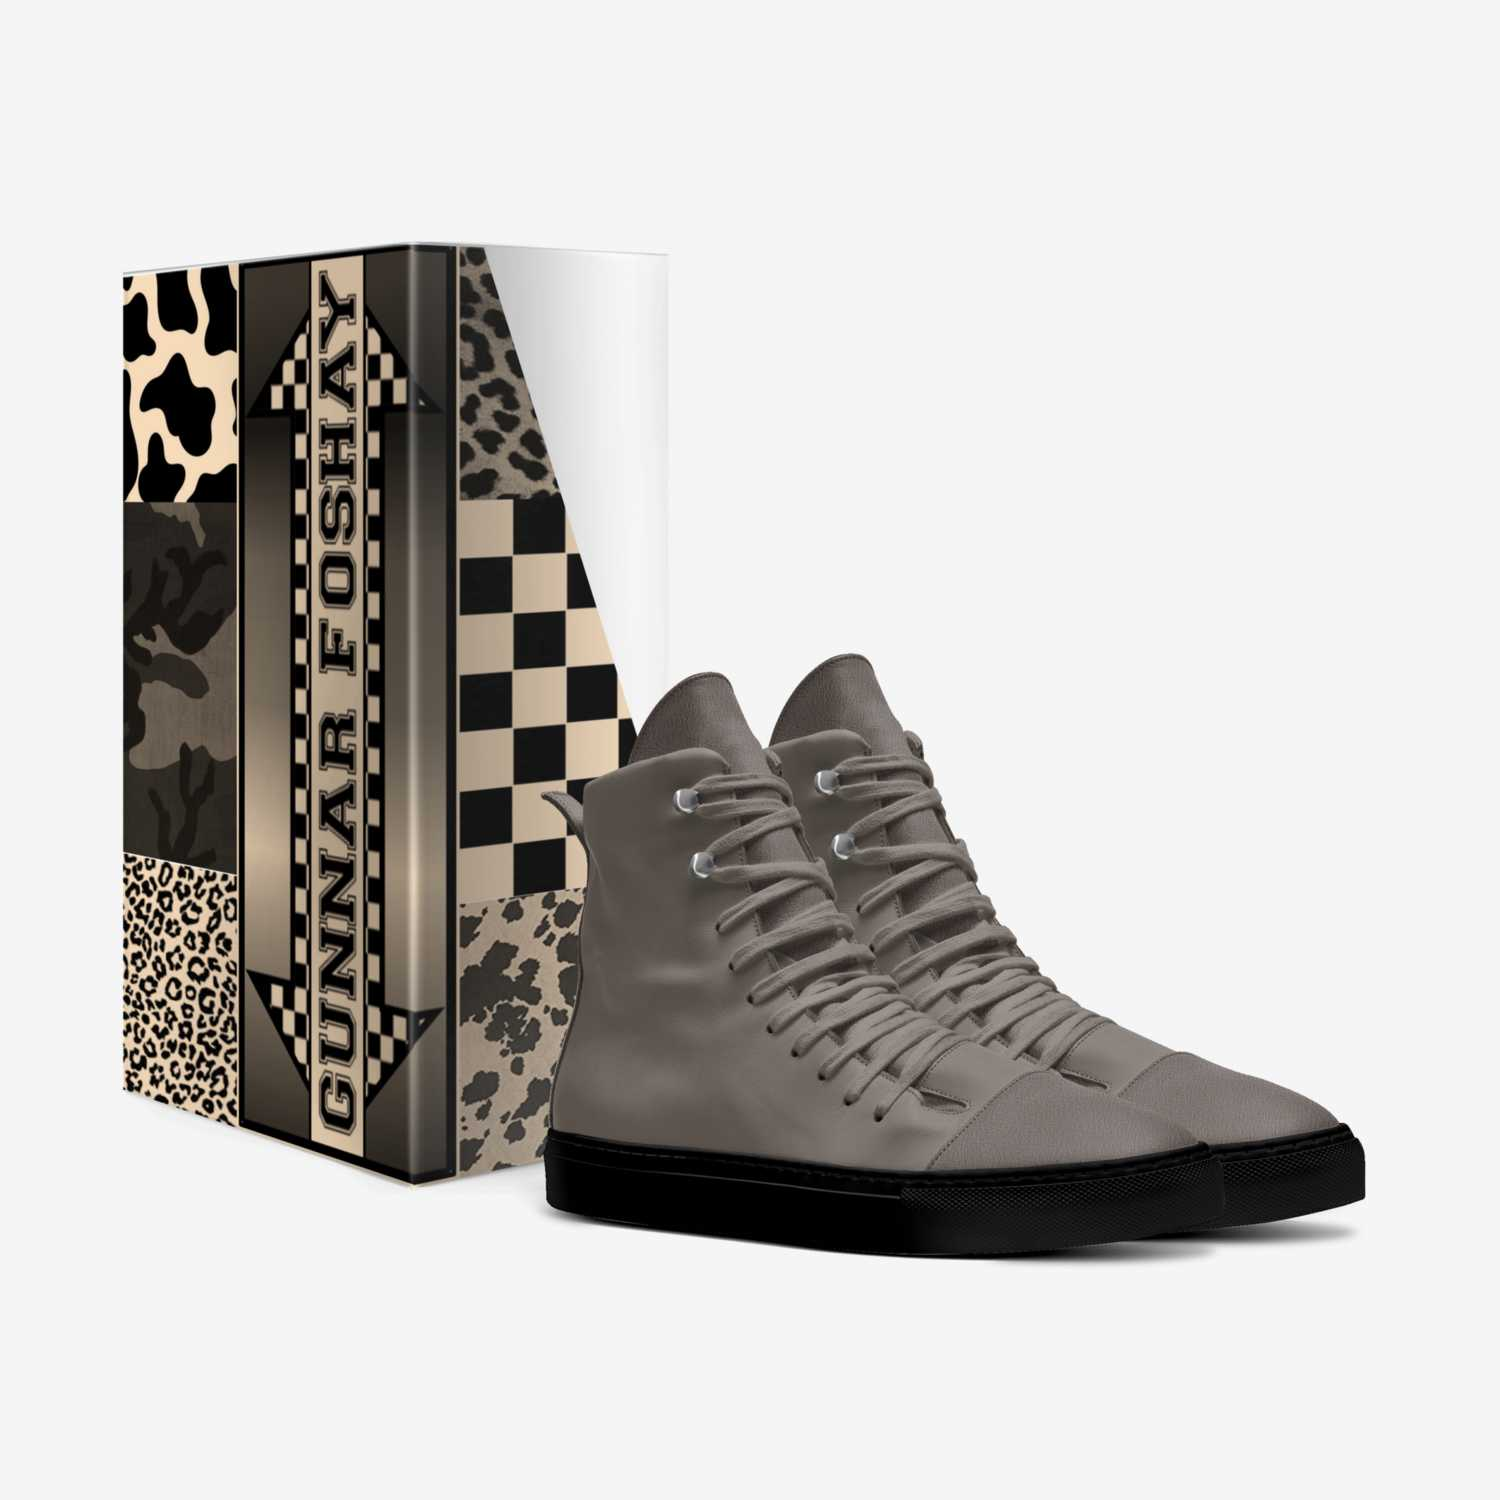 GUNNAR FOSHAY custom made in Italy shoes by Madison L. Mobley | Box view